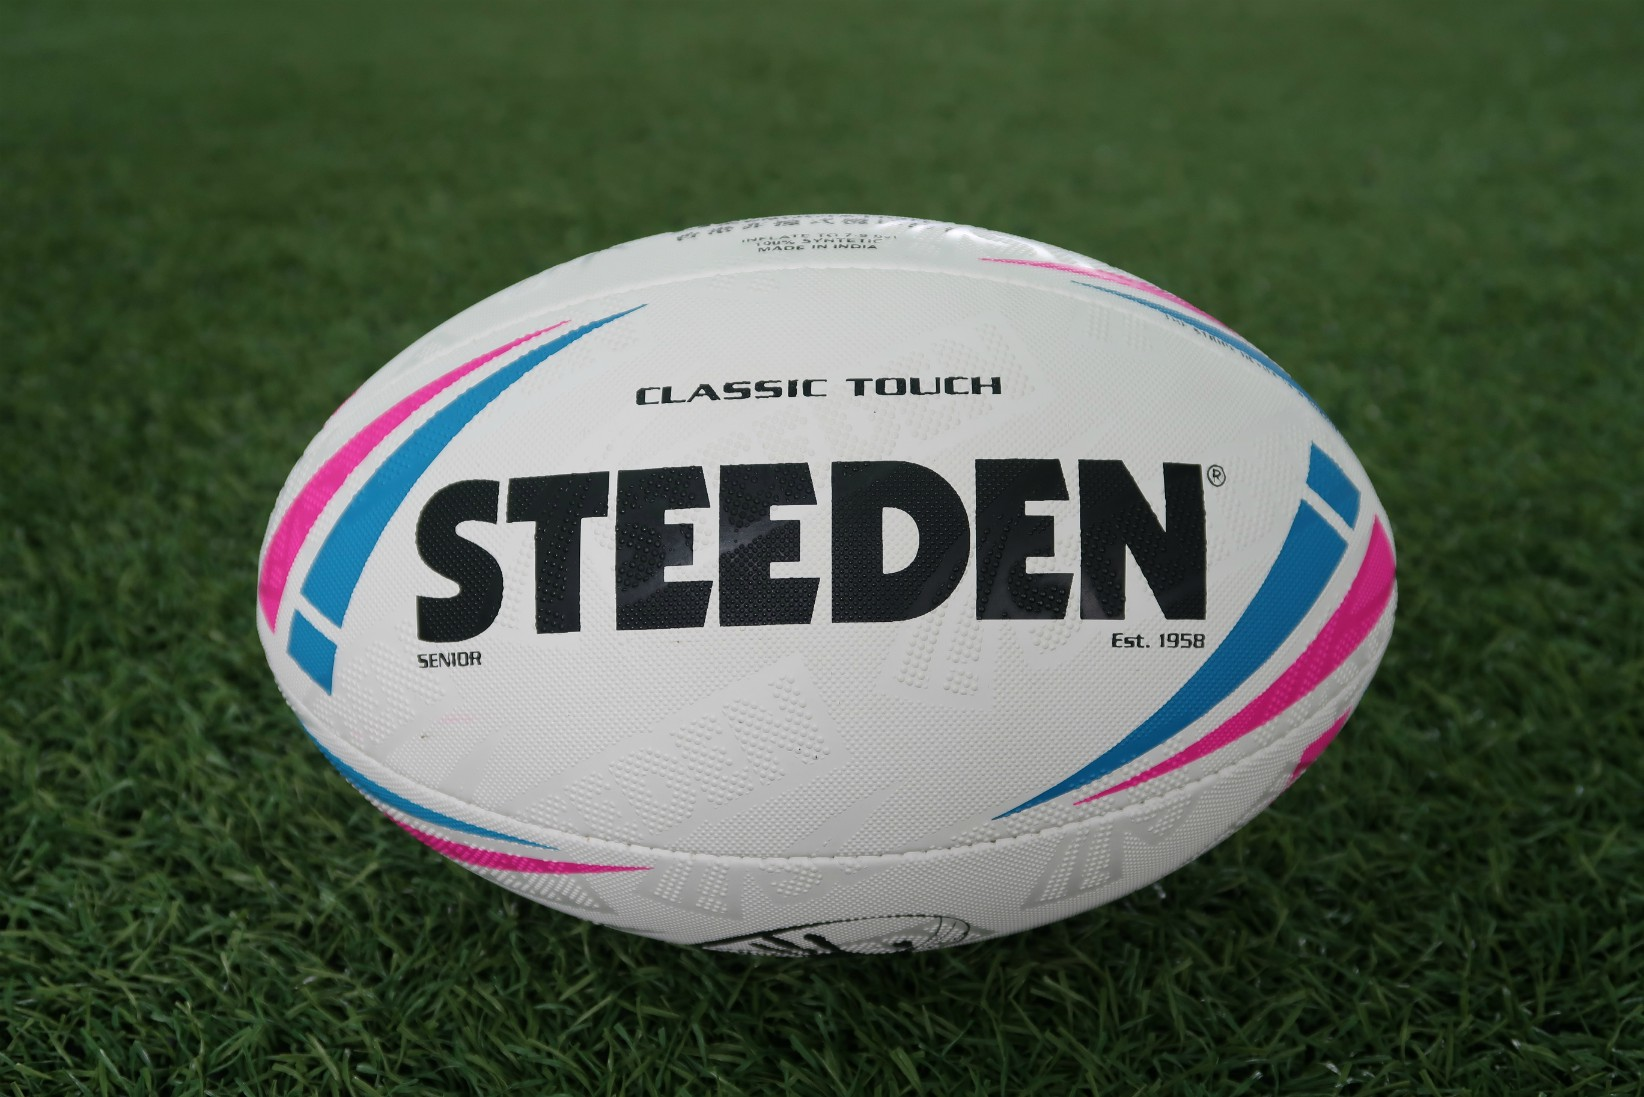 STEEDEN - CLASSIC TOUCH MATCH BALL - Now On Sale! thumbnail